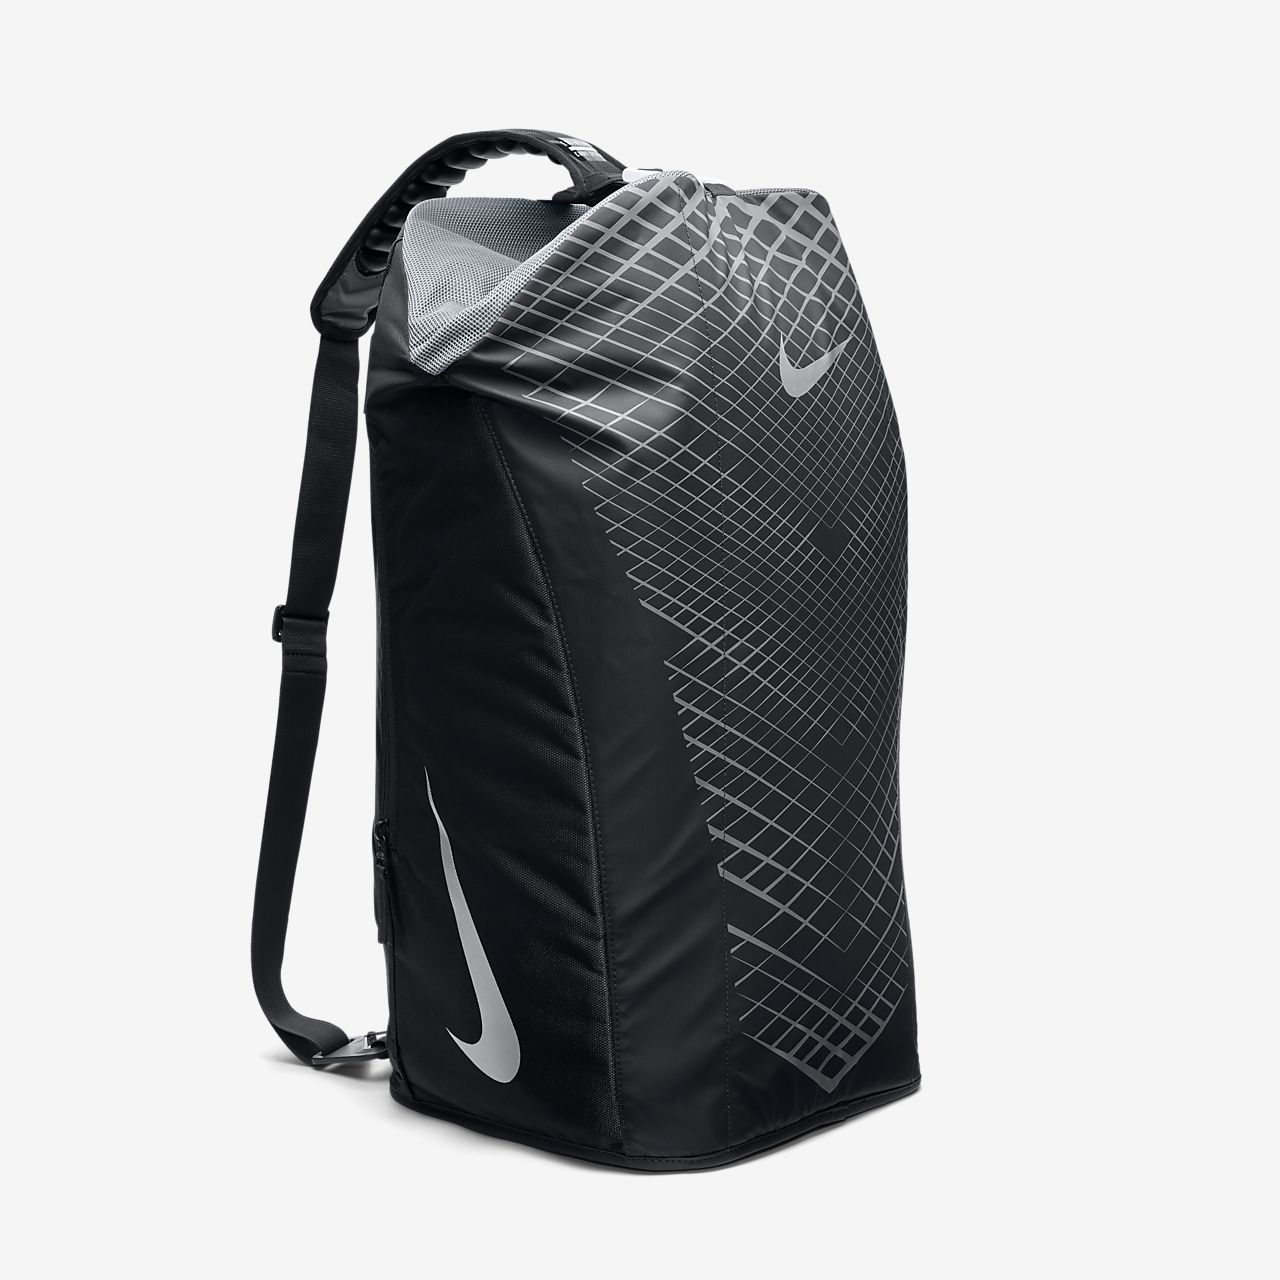 b208f49f0f nike vapor backpack cheap   OFF75% The Largest Catalog Discounts